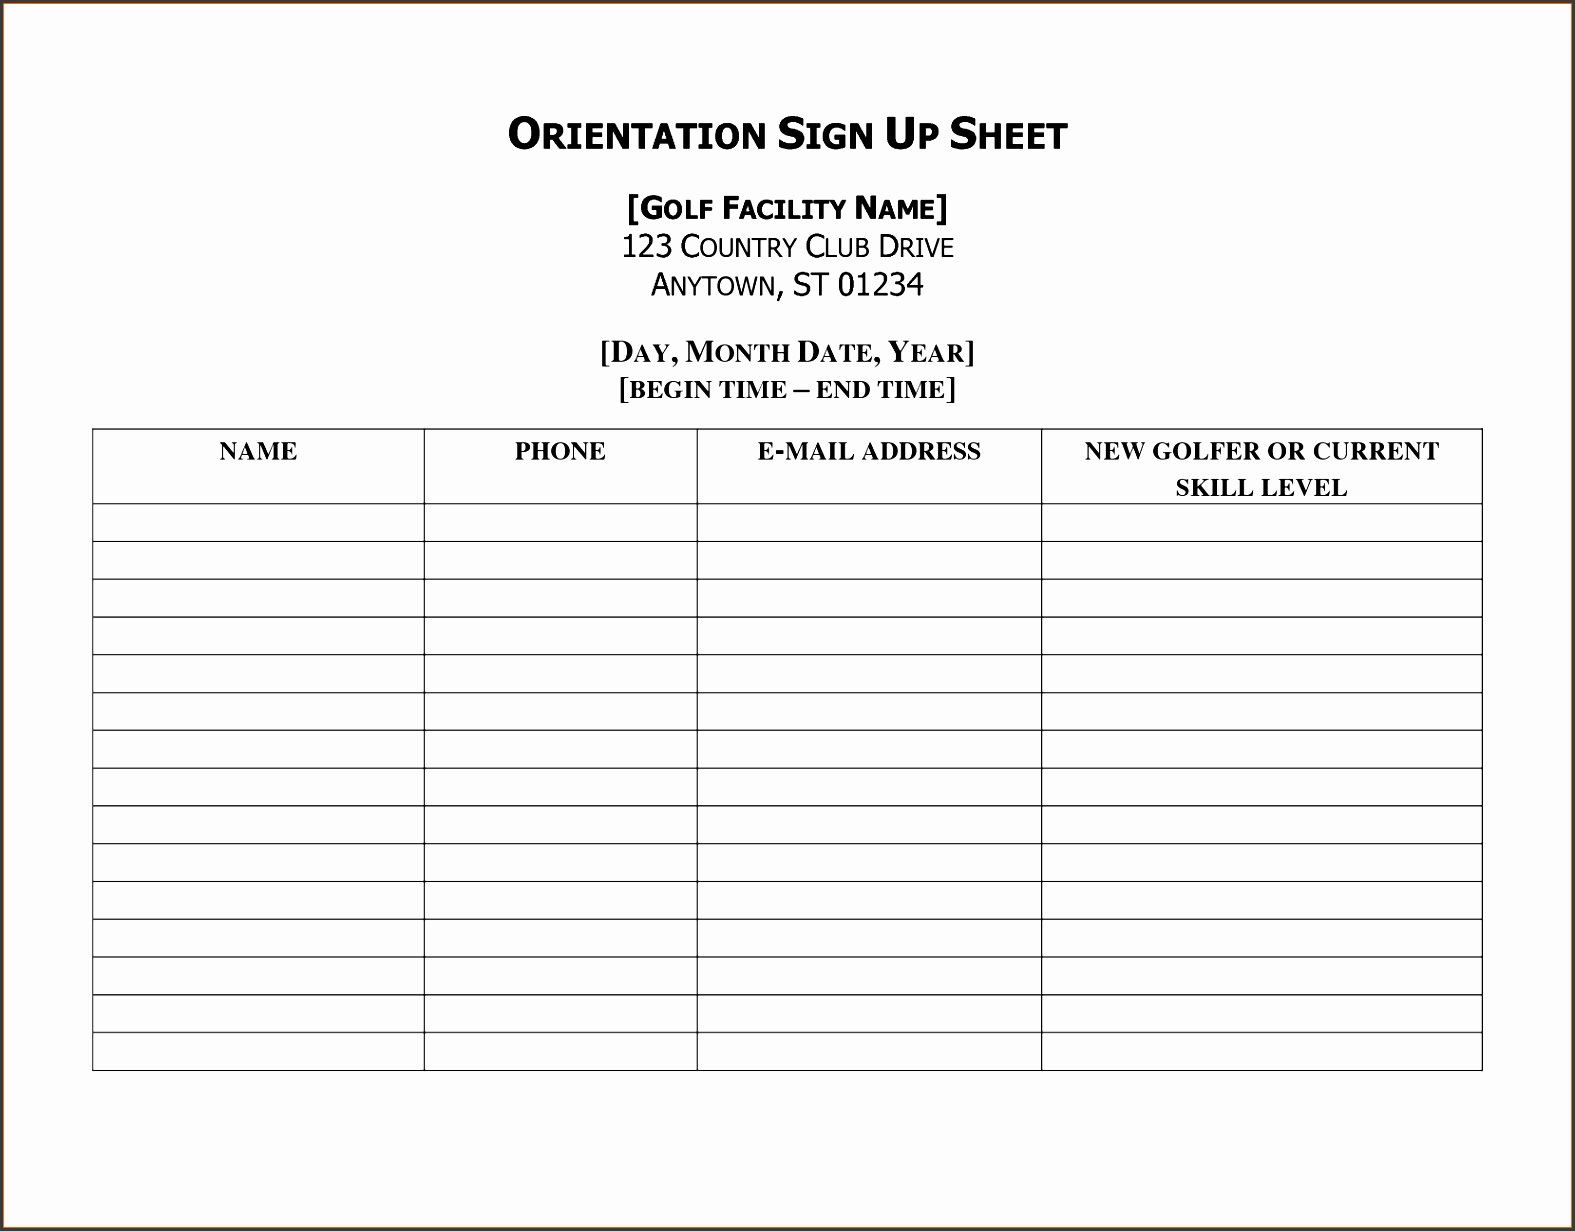 5 Sign Sheet Template SampleTemplatess SampleTemplatess Sign Sheet Template  Whubl Inspirational Doc 500608 Printable Sign Up  Club Sign In Sheet Template